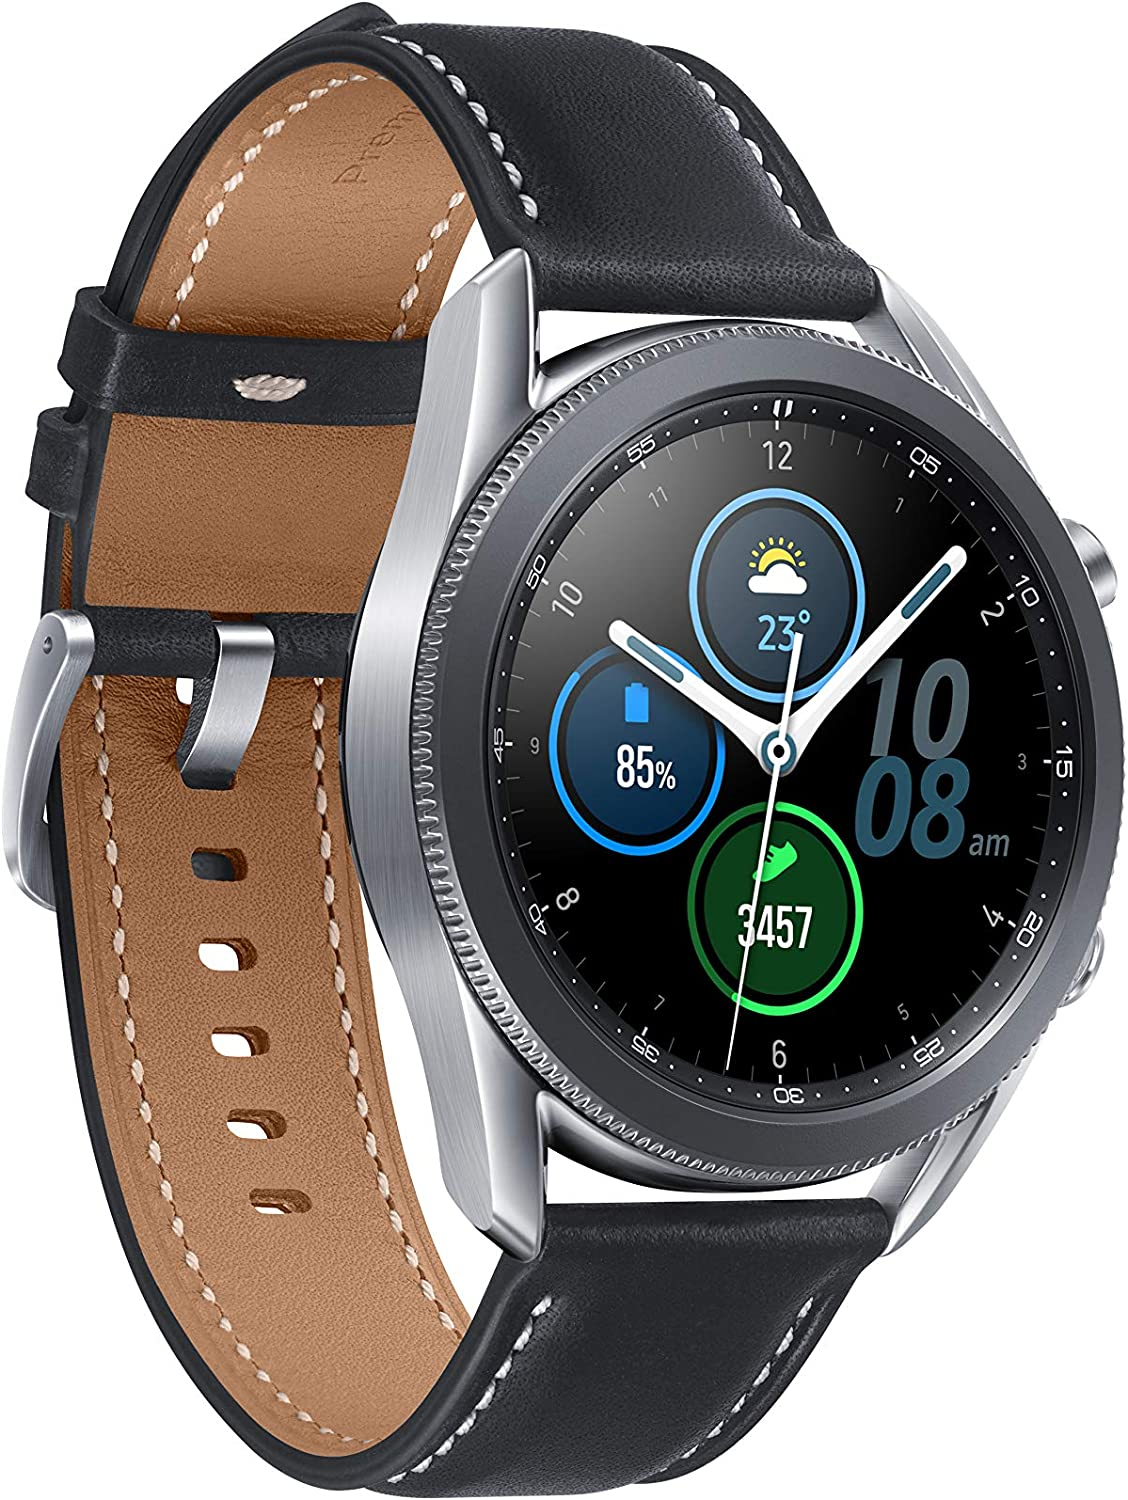 Samsung - Montre Galaxy Watch 3